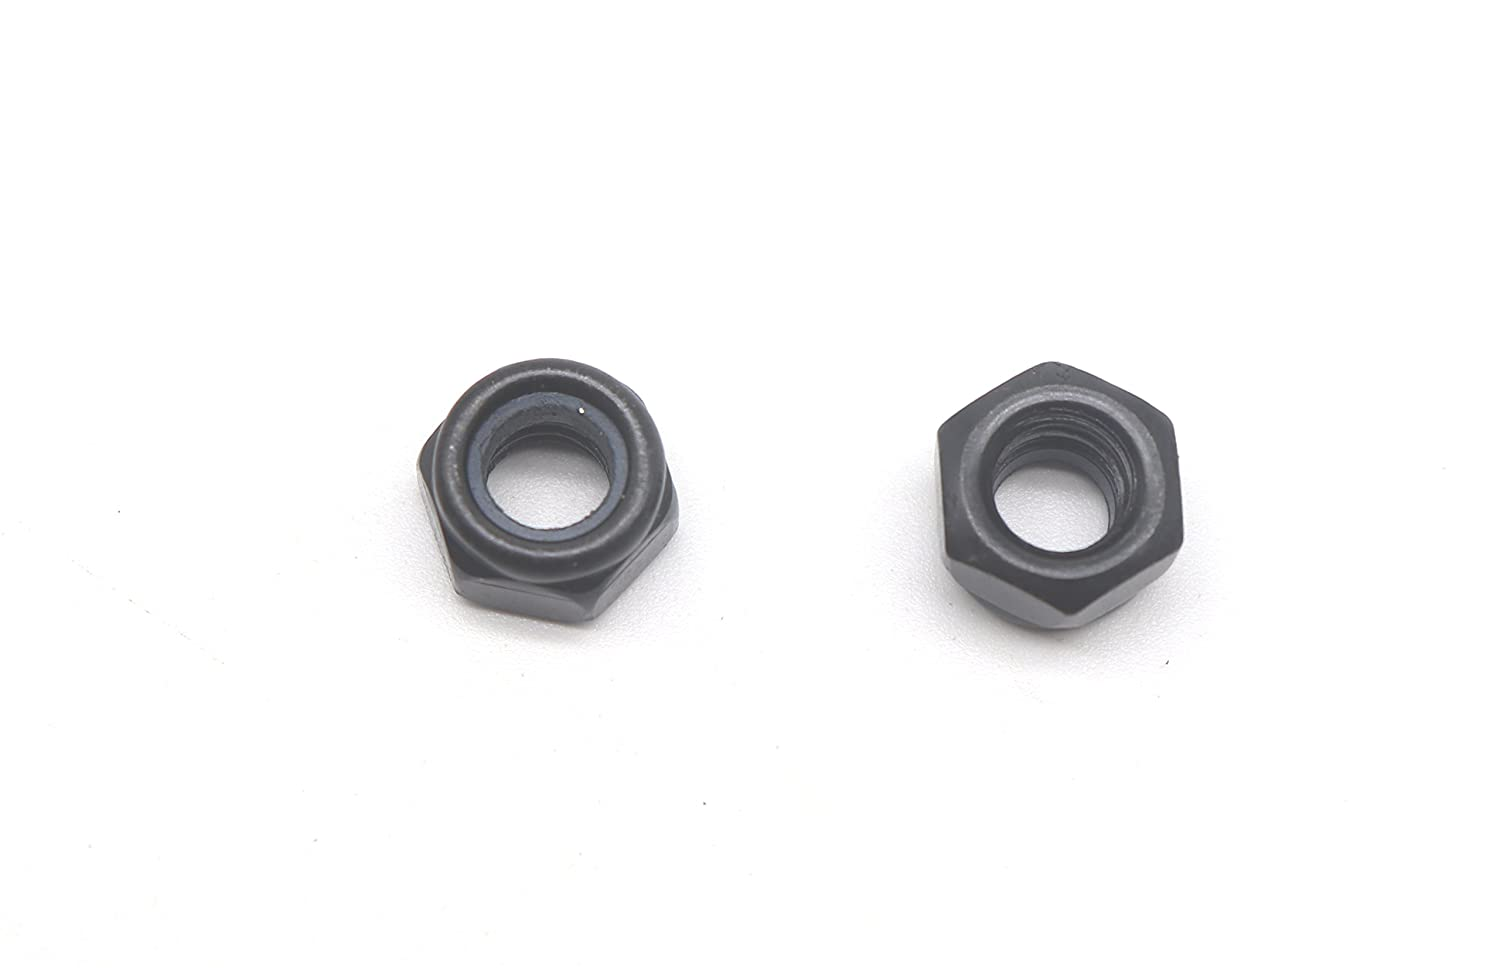 binifiMux 30Pcs M6-1.0mm Black Zinc Plated Nylon Lock Nuts Inserted Hex Self Clinching Nuts